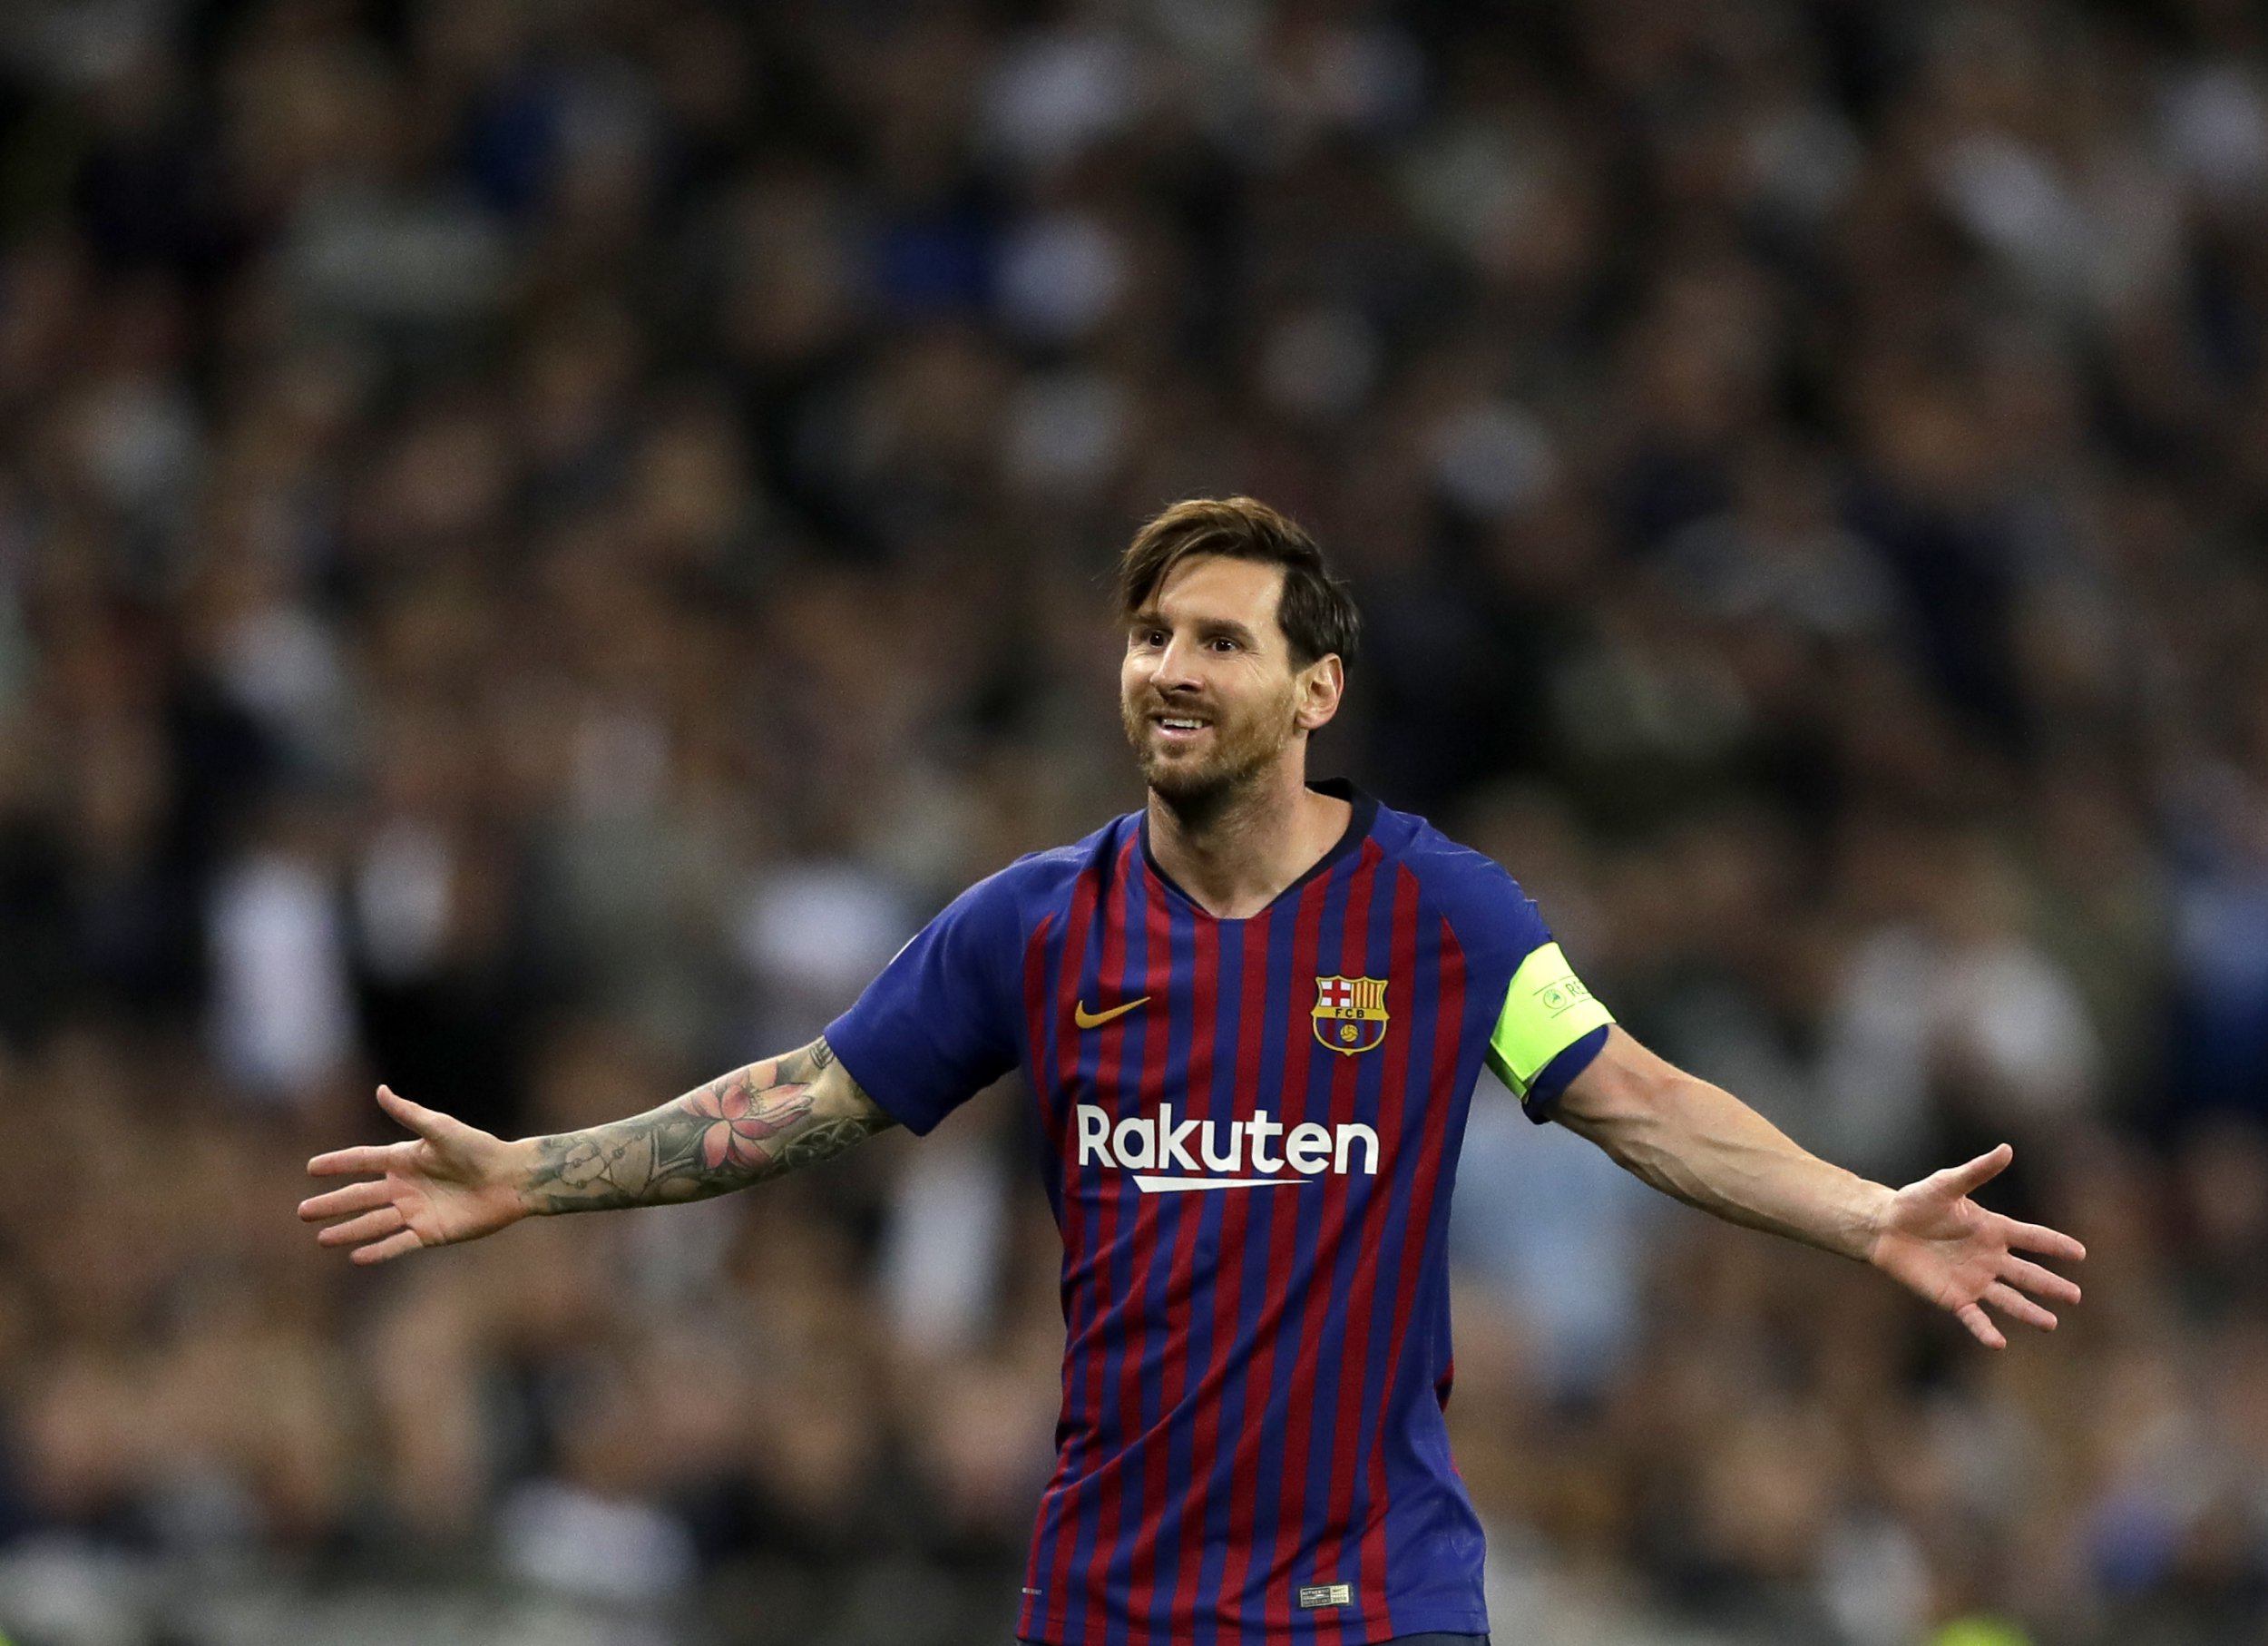 Barcelona forward Lionel Messi reacts during the Champions League Group B soccer match between Tottenham Hotspur and Barcelona at Wembley Stadium in London, Wednesday, Oct. 3, 2018. (AP Photo/Kirsty Wigglesworth)